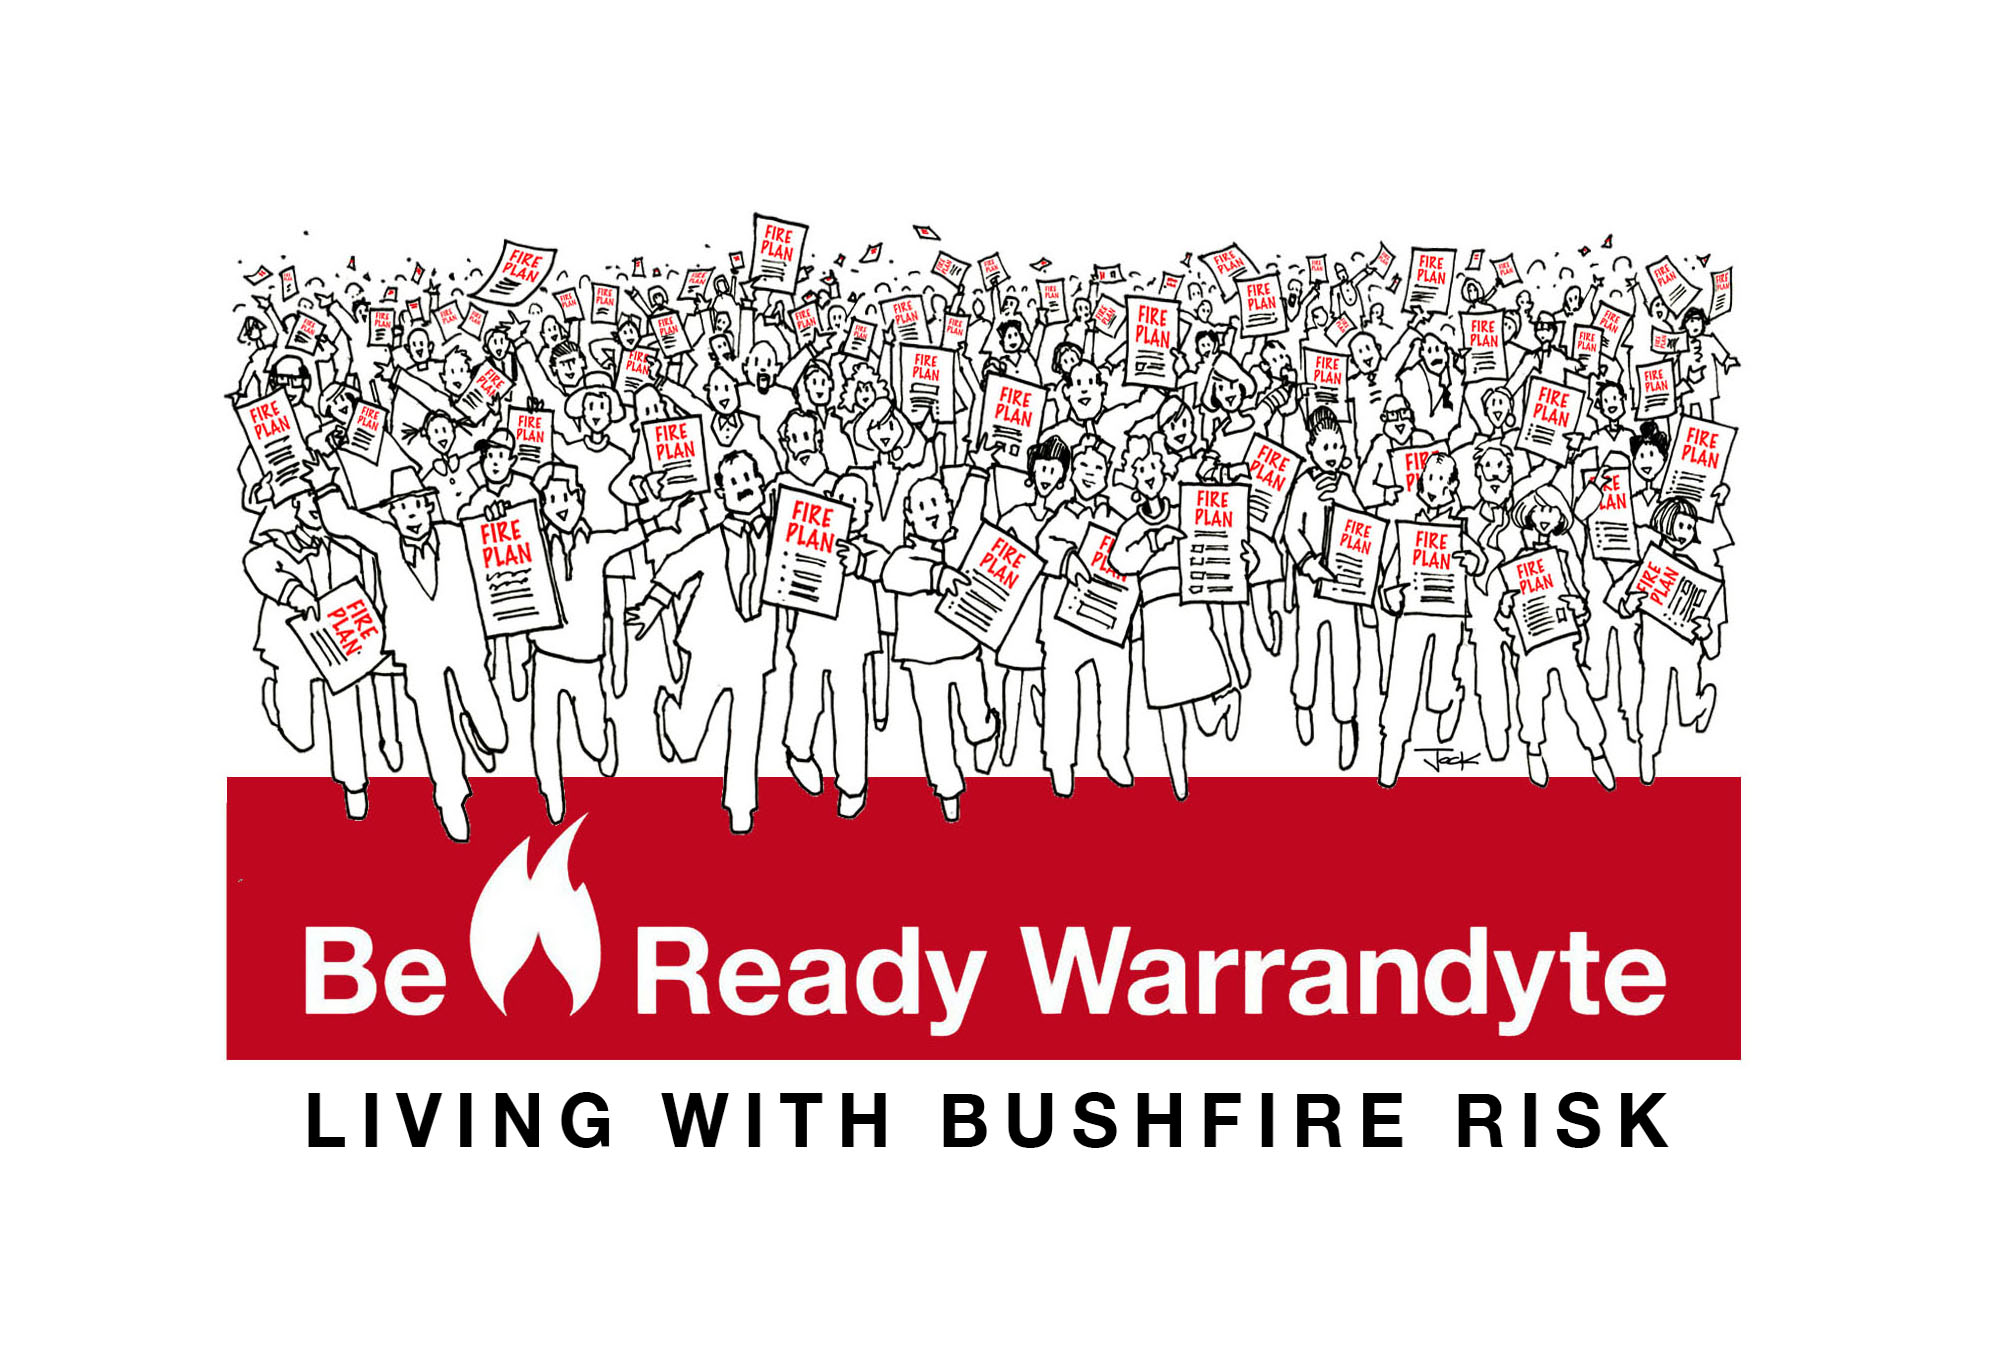 Farewell and Thank You as the Be Ready Warrandyte Project winds down – for now.